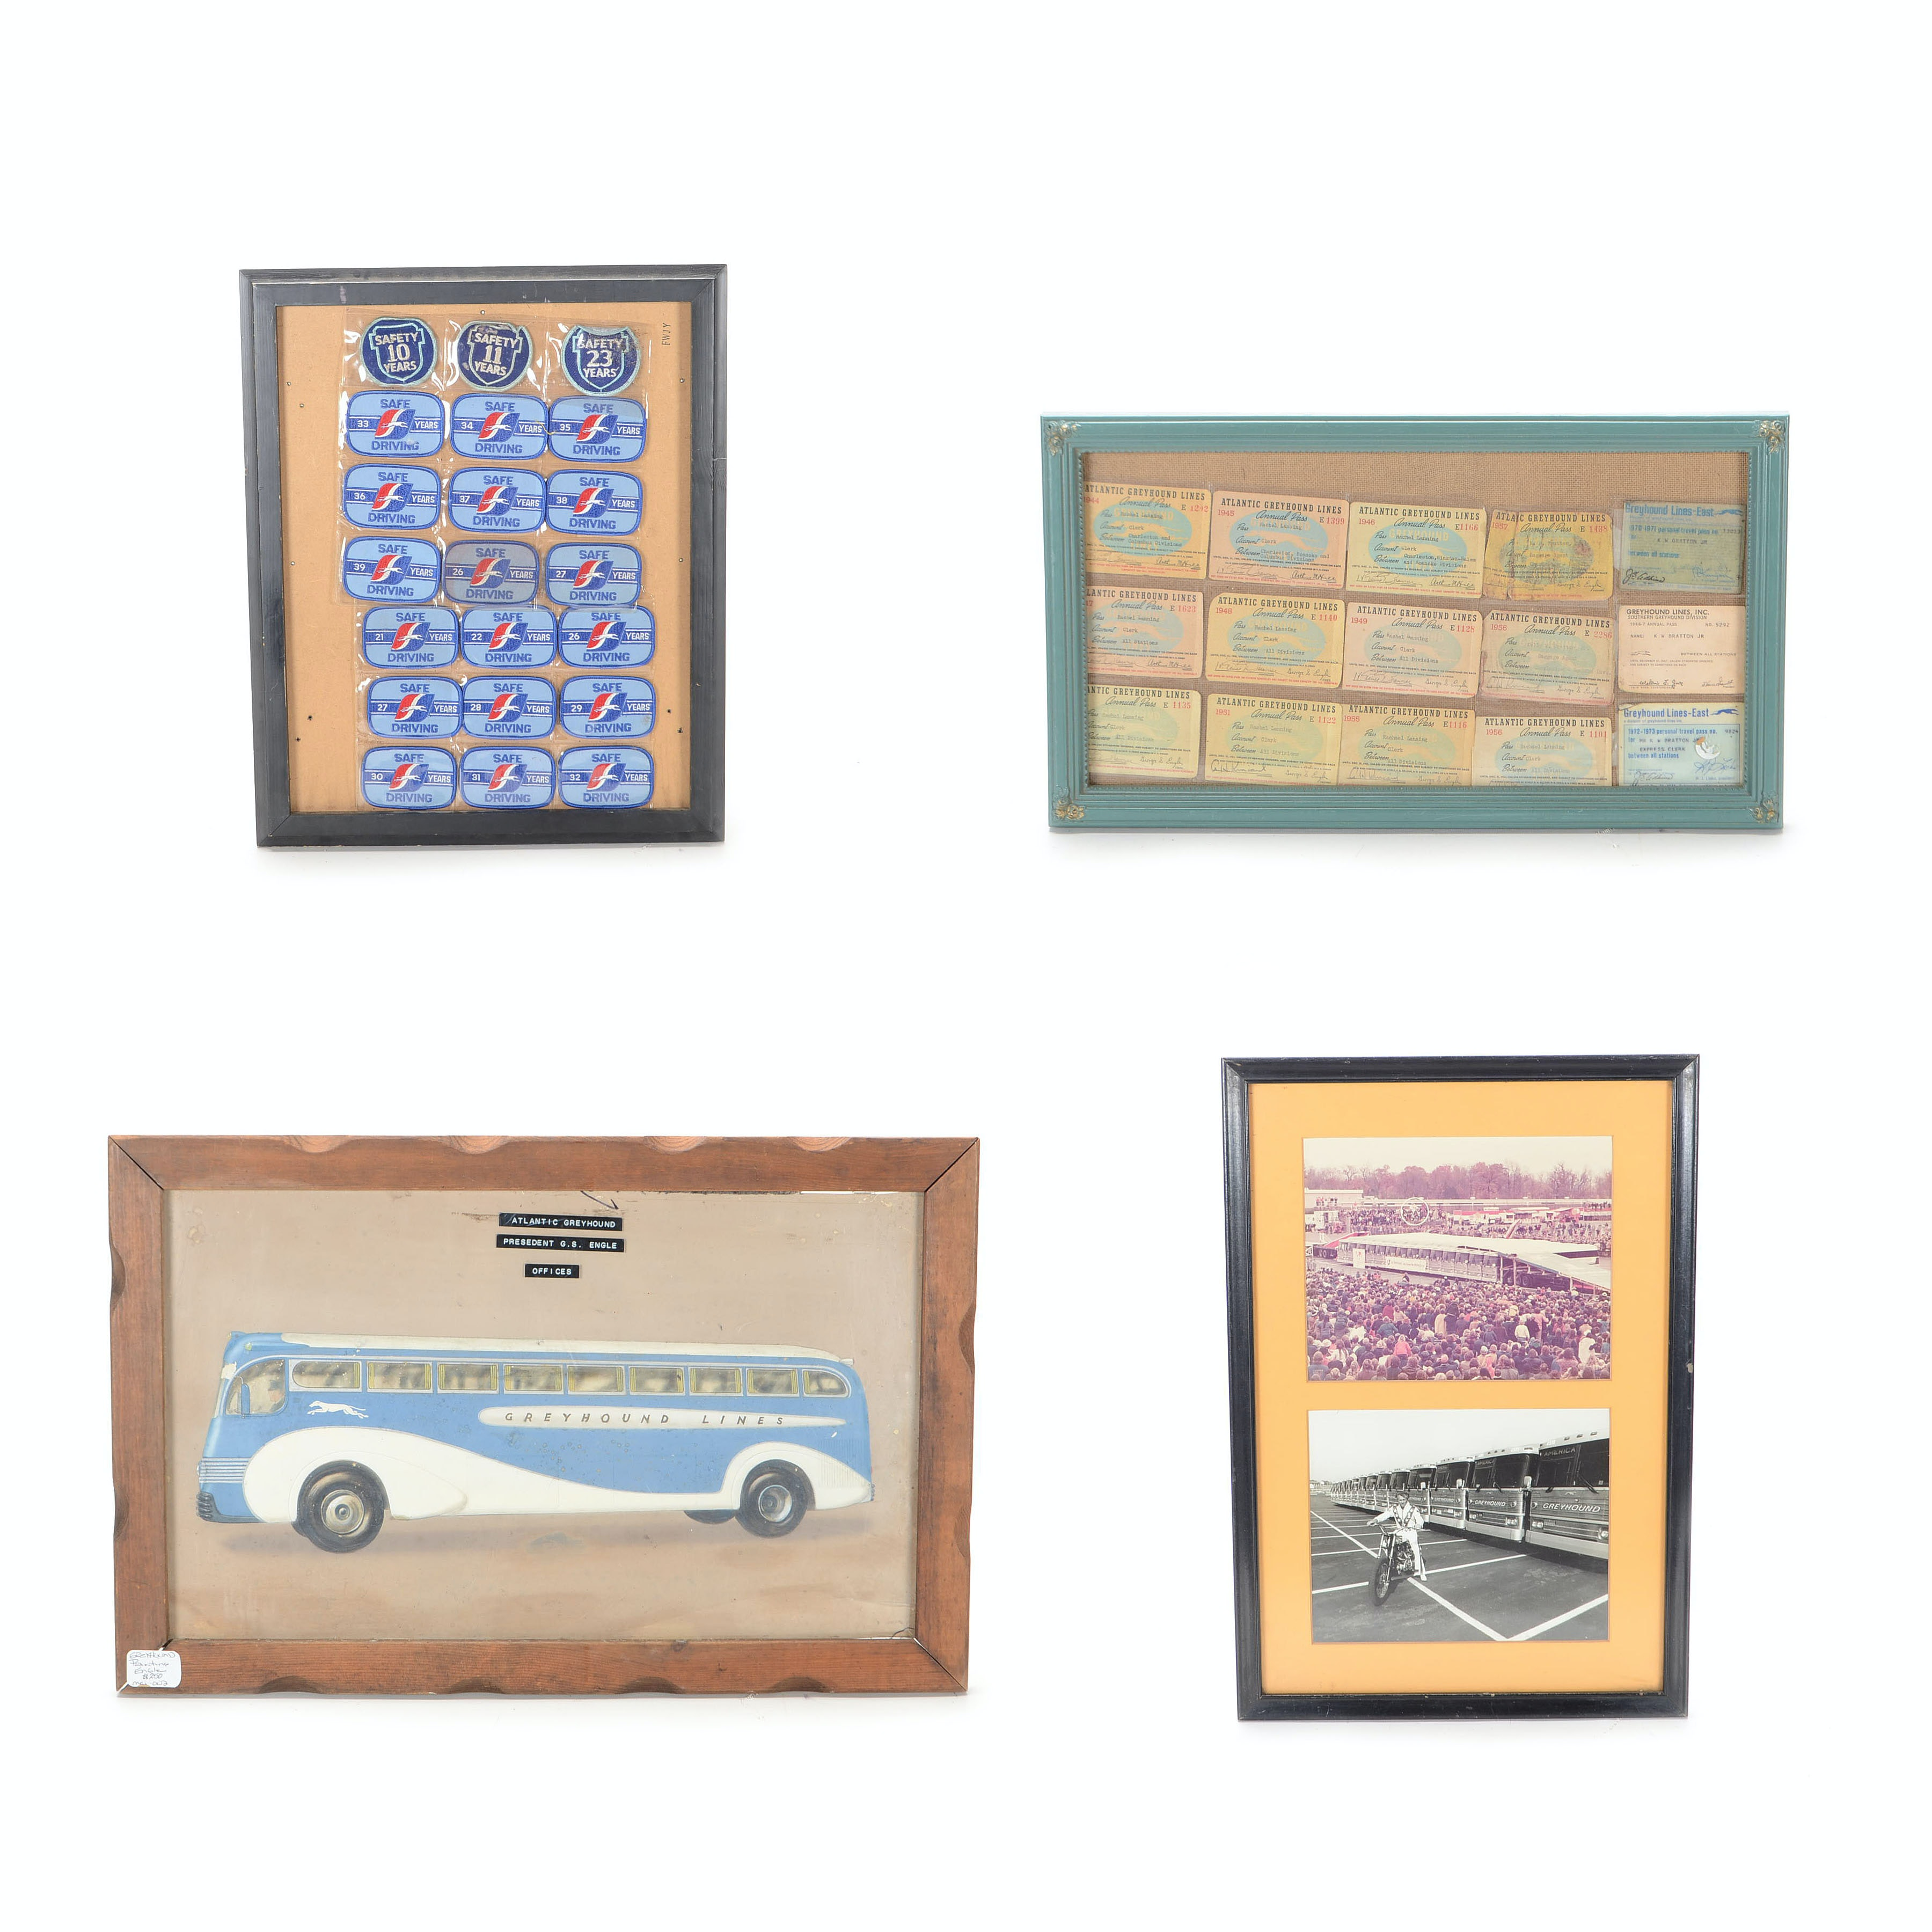 Collection of Framed Greyhound Bus Collectibles